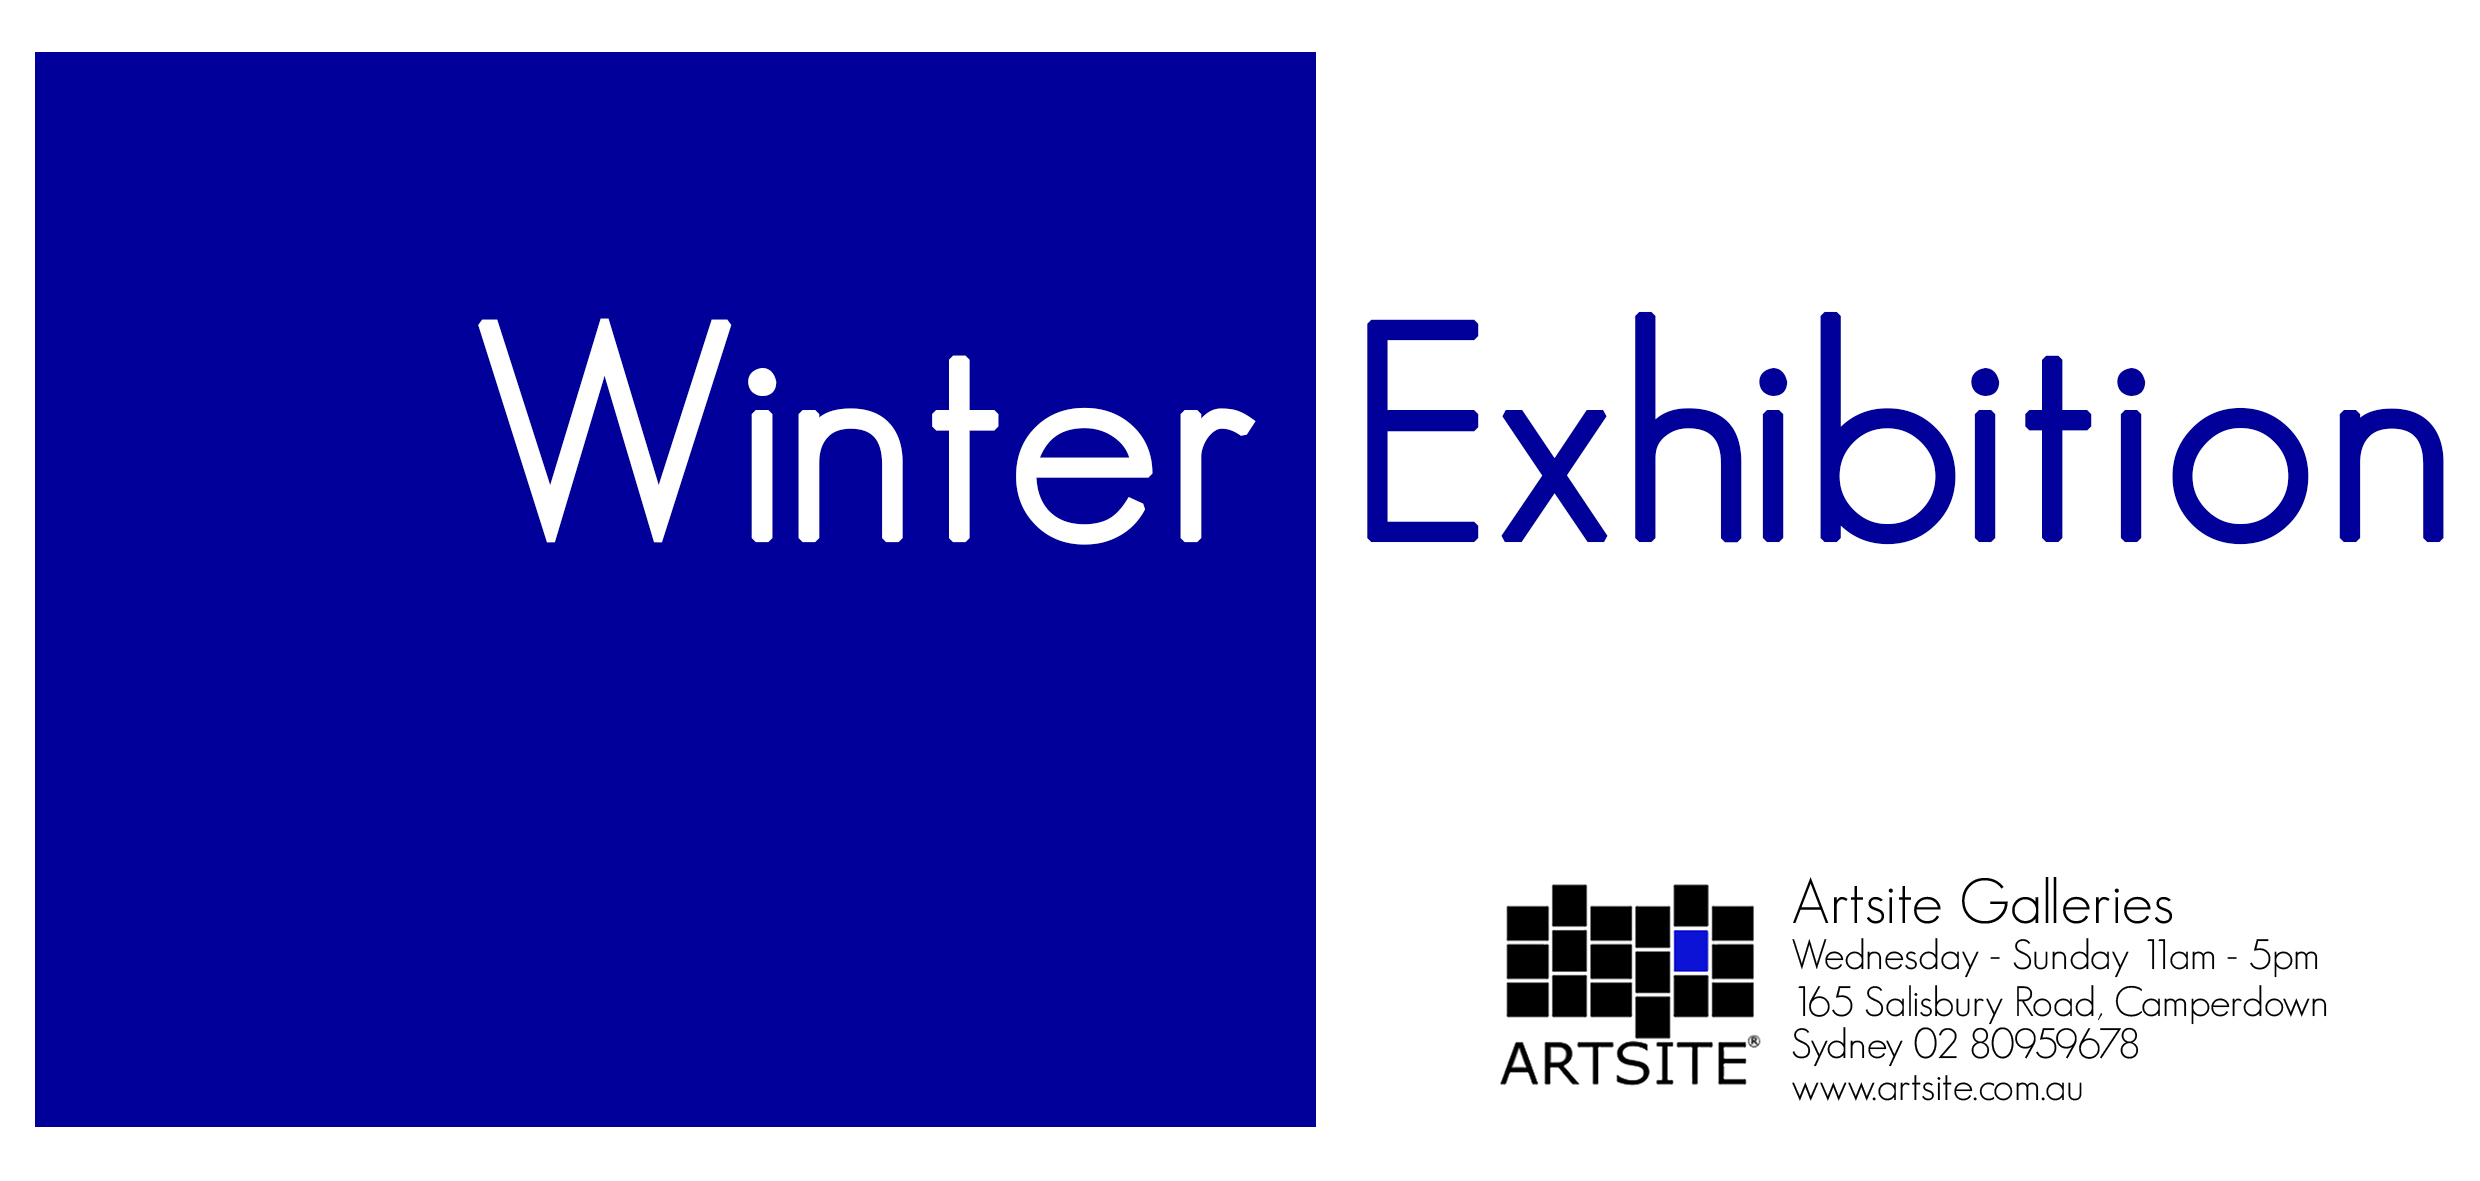 Artsite Gallery Winter Exhibition | Open Weekends | Saturdays and Sundays 11am - 5pm | June and July 2019